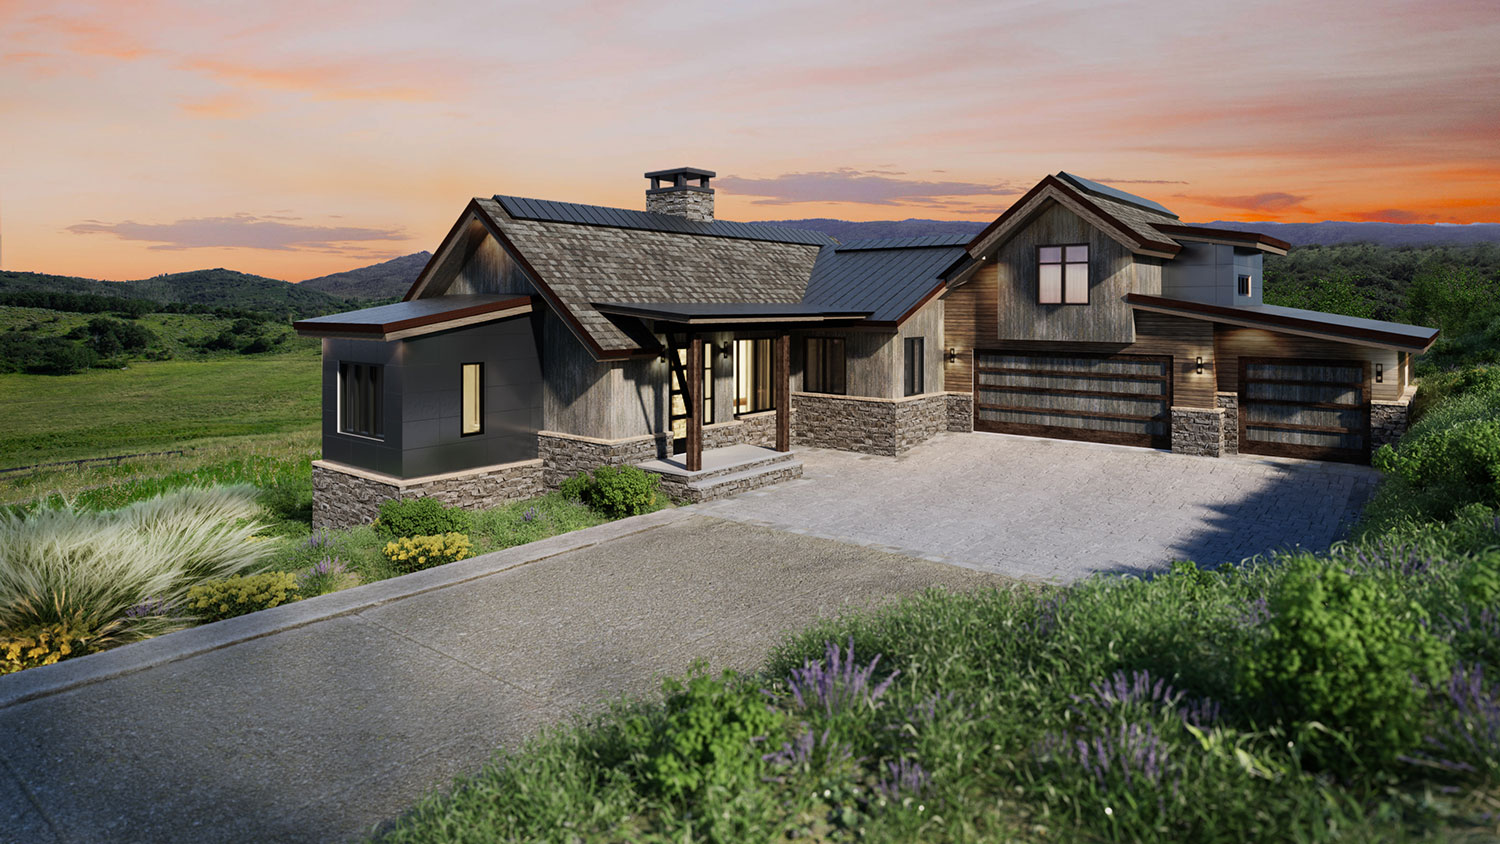 lot 44 spring 3 - Spring Kicks-Off Active Season of Home Building, Headlined by the Mountain Modern Trilogy Residence